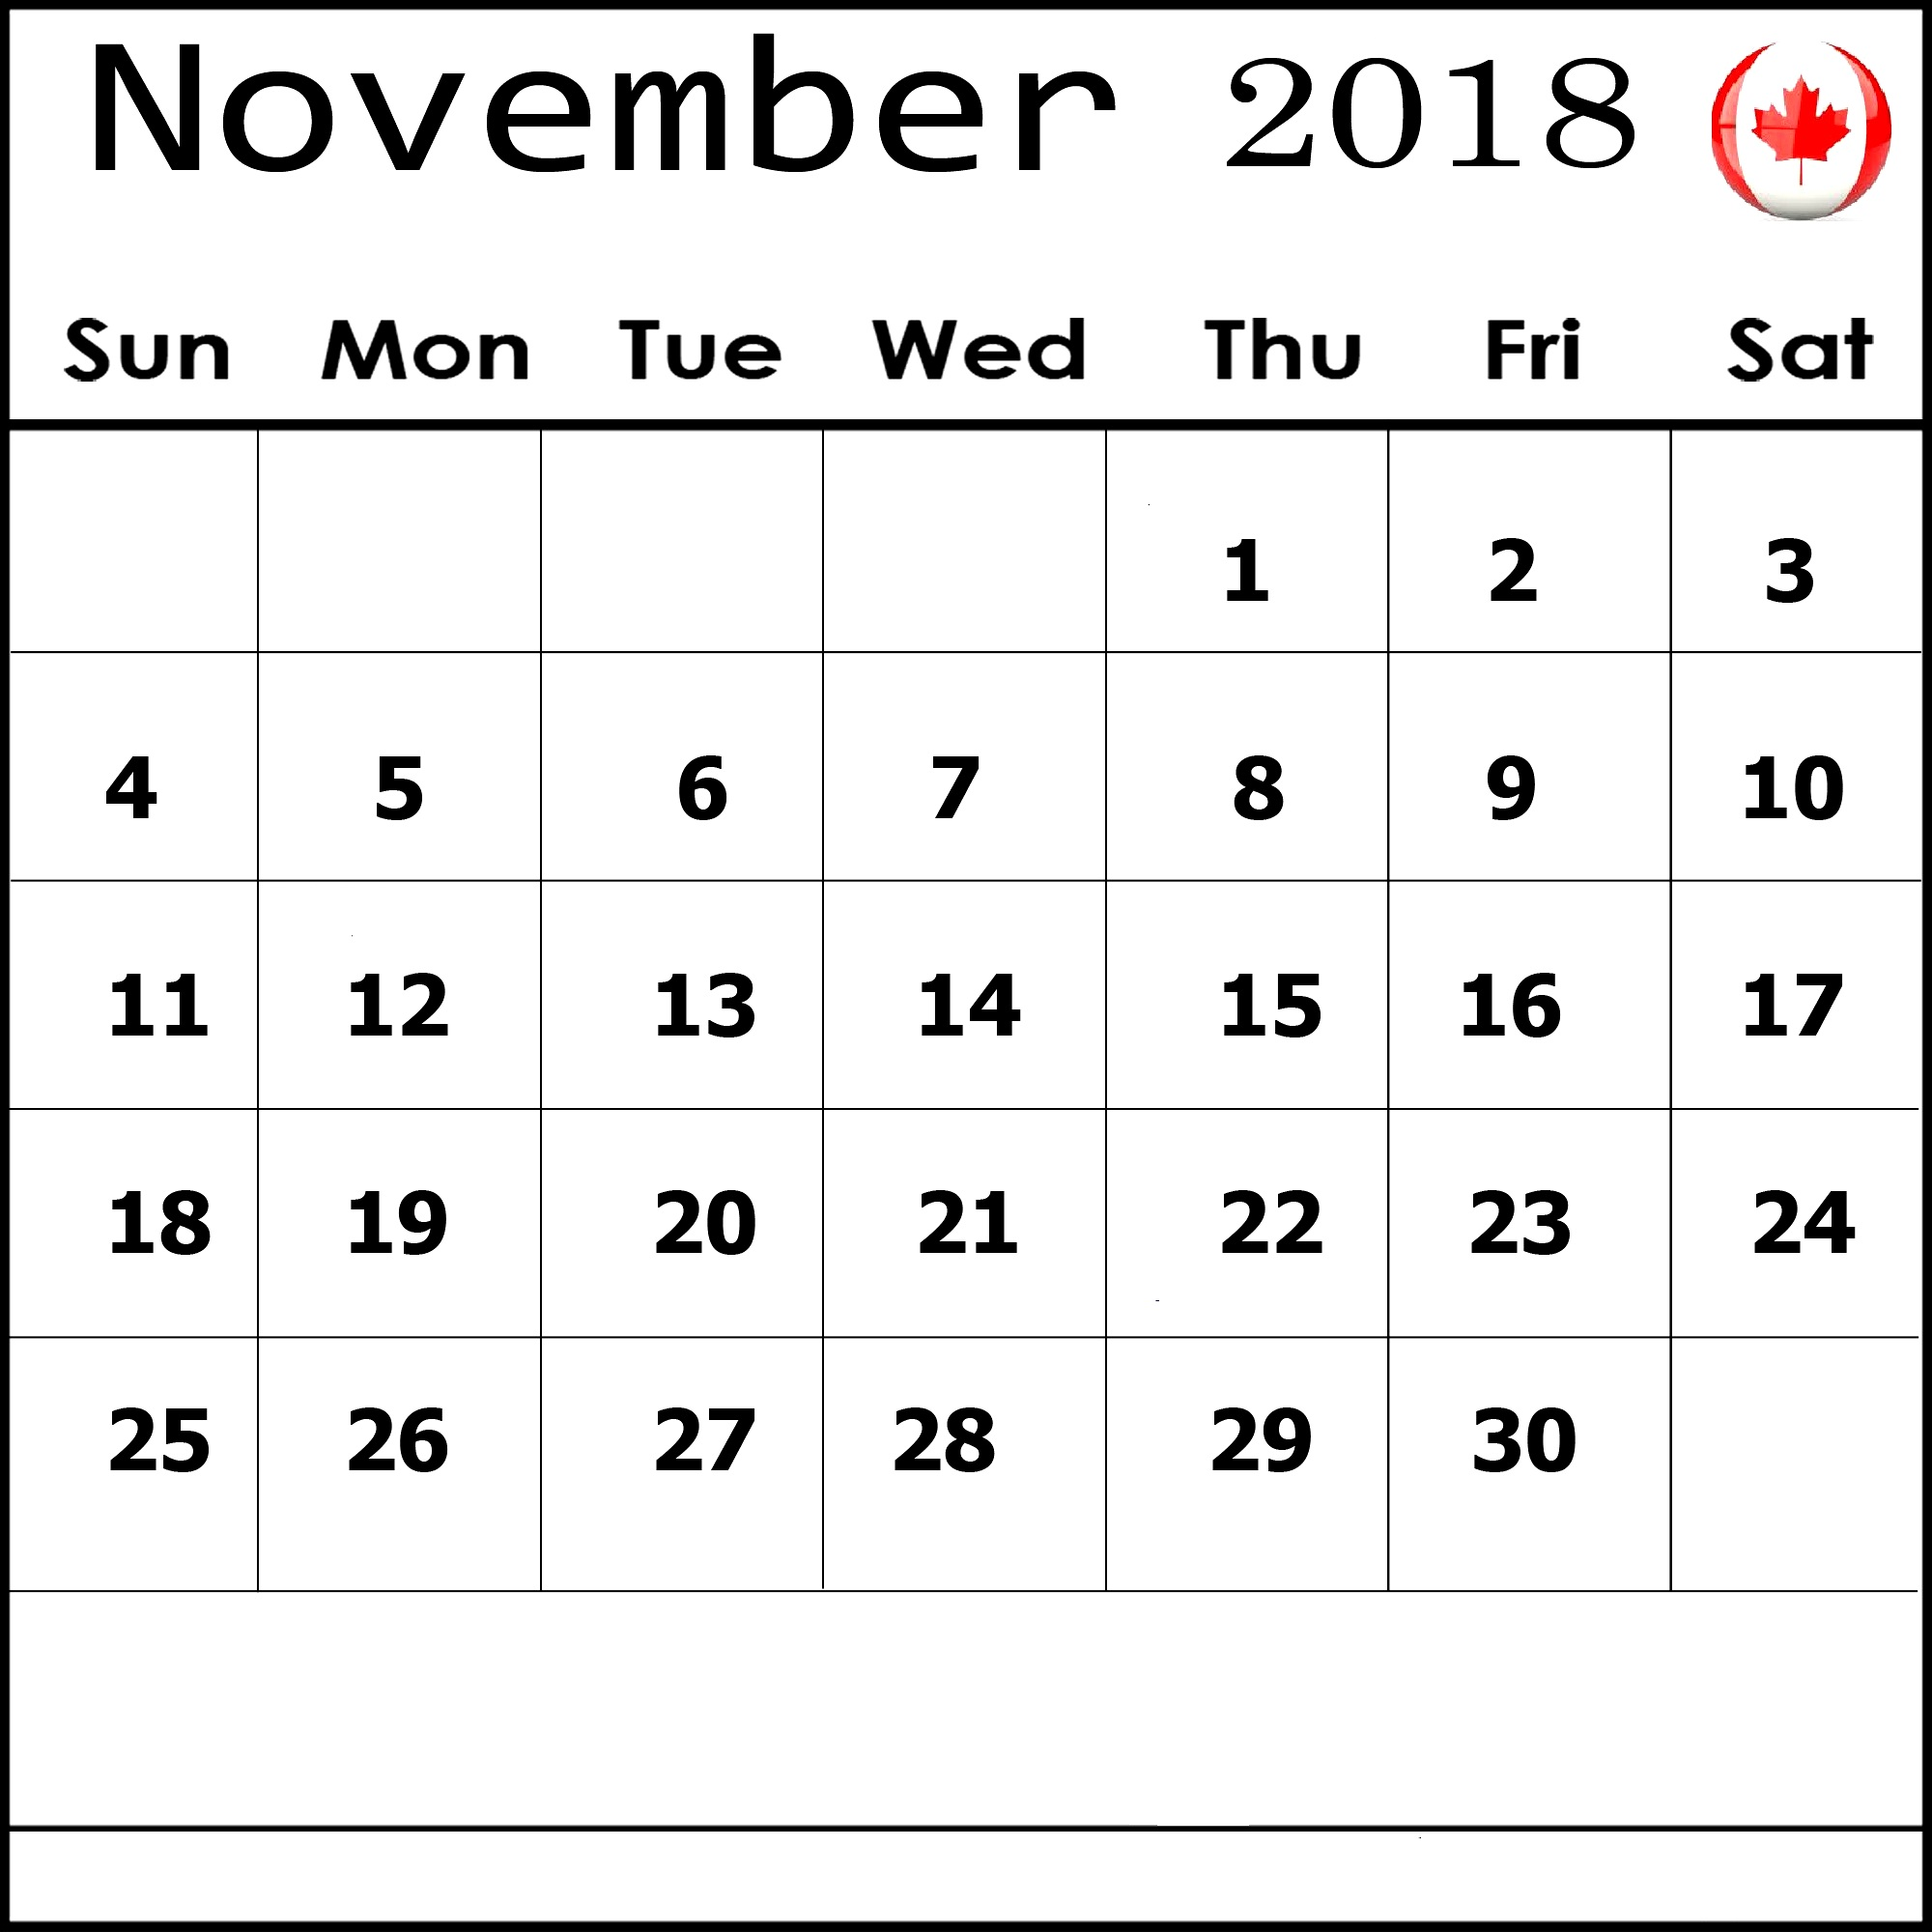 November 2018 Calendar Canada for Desktop